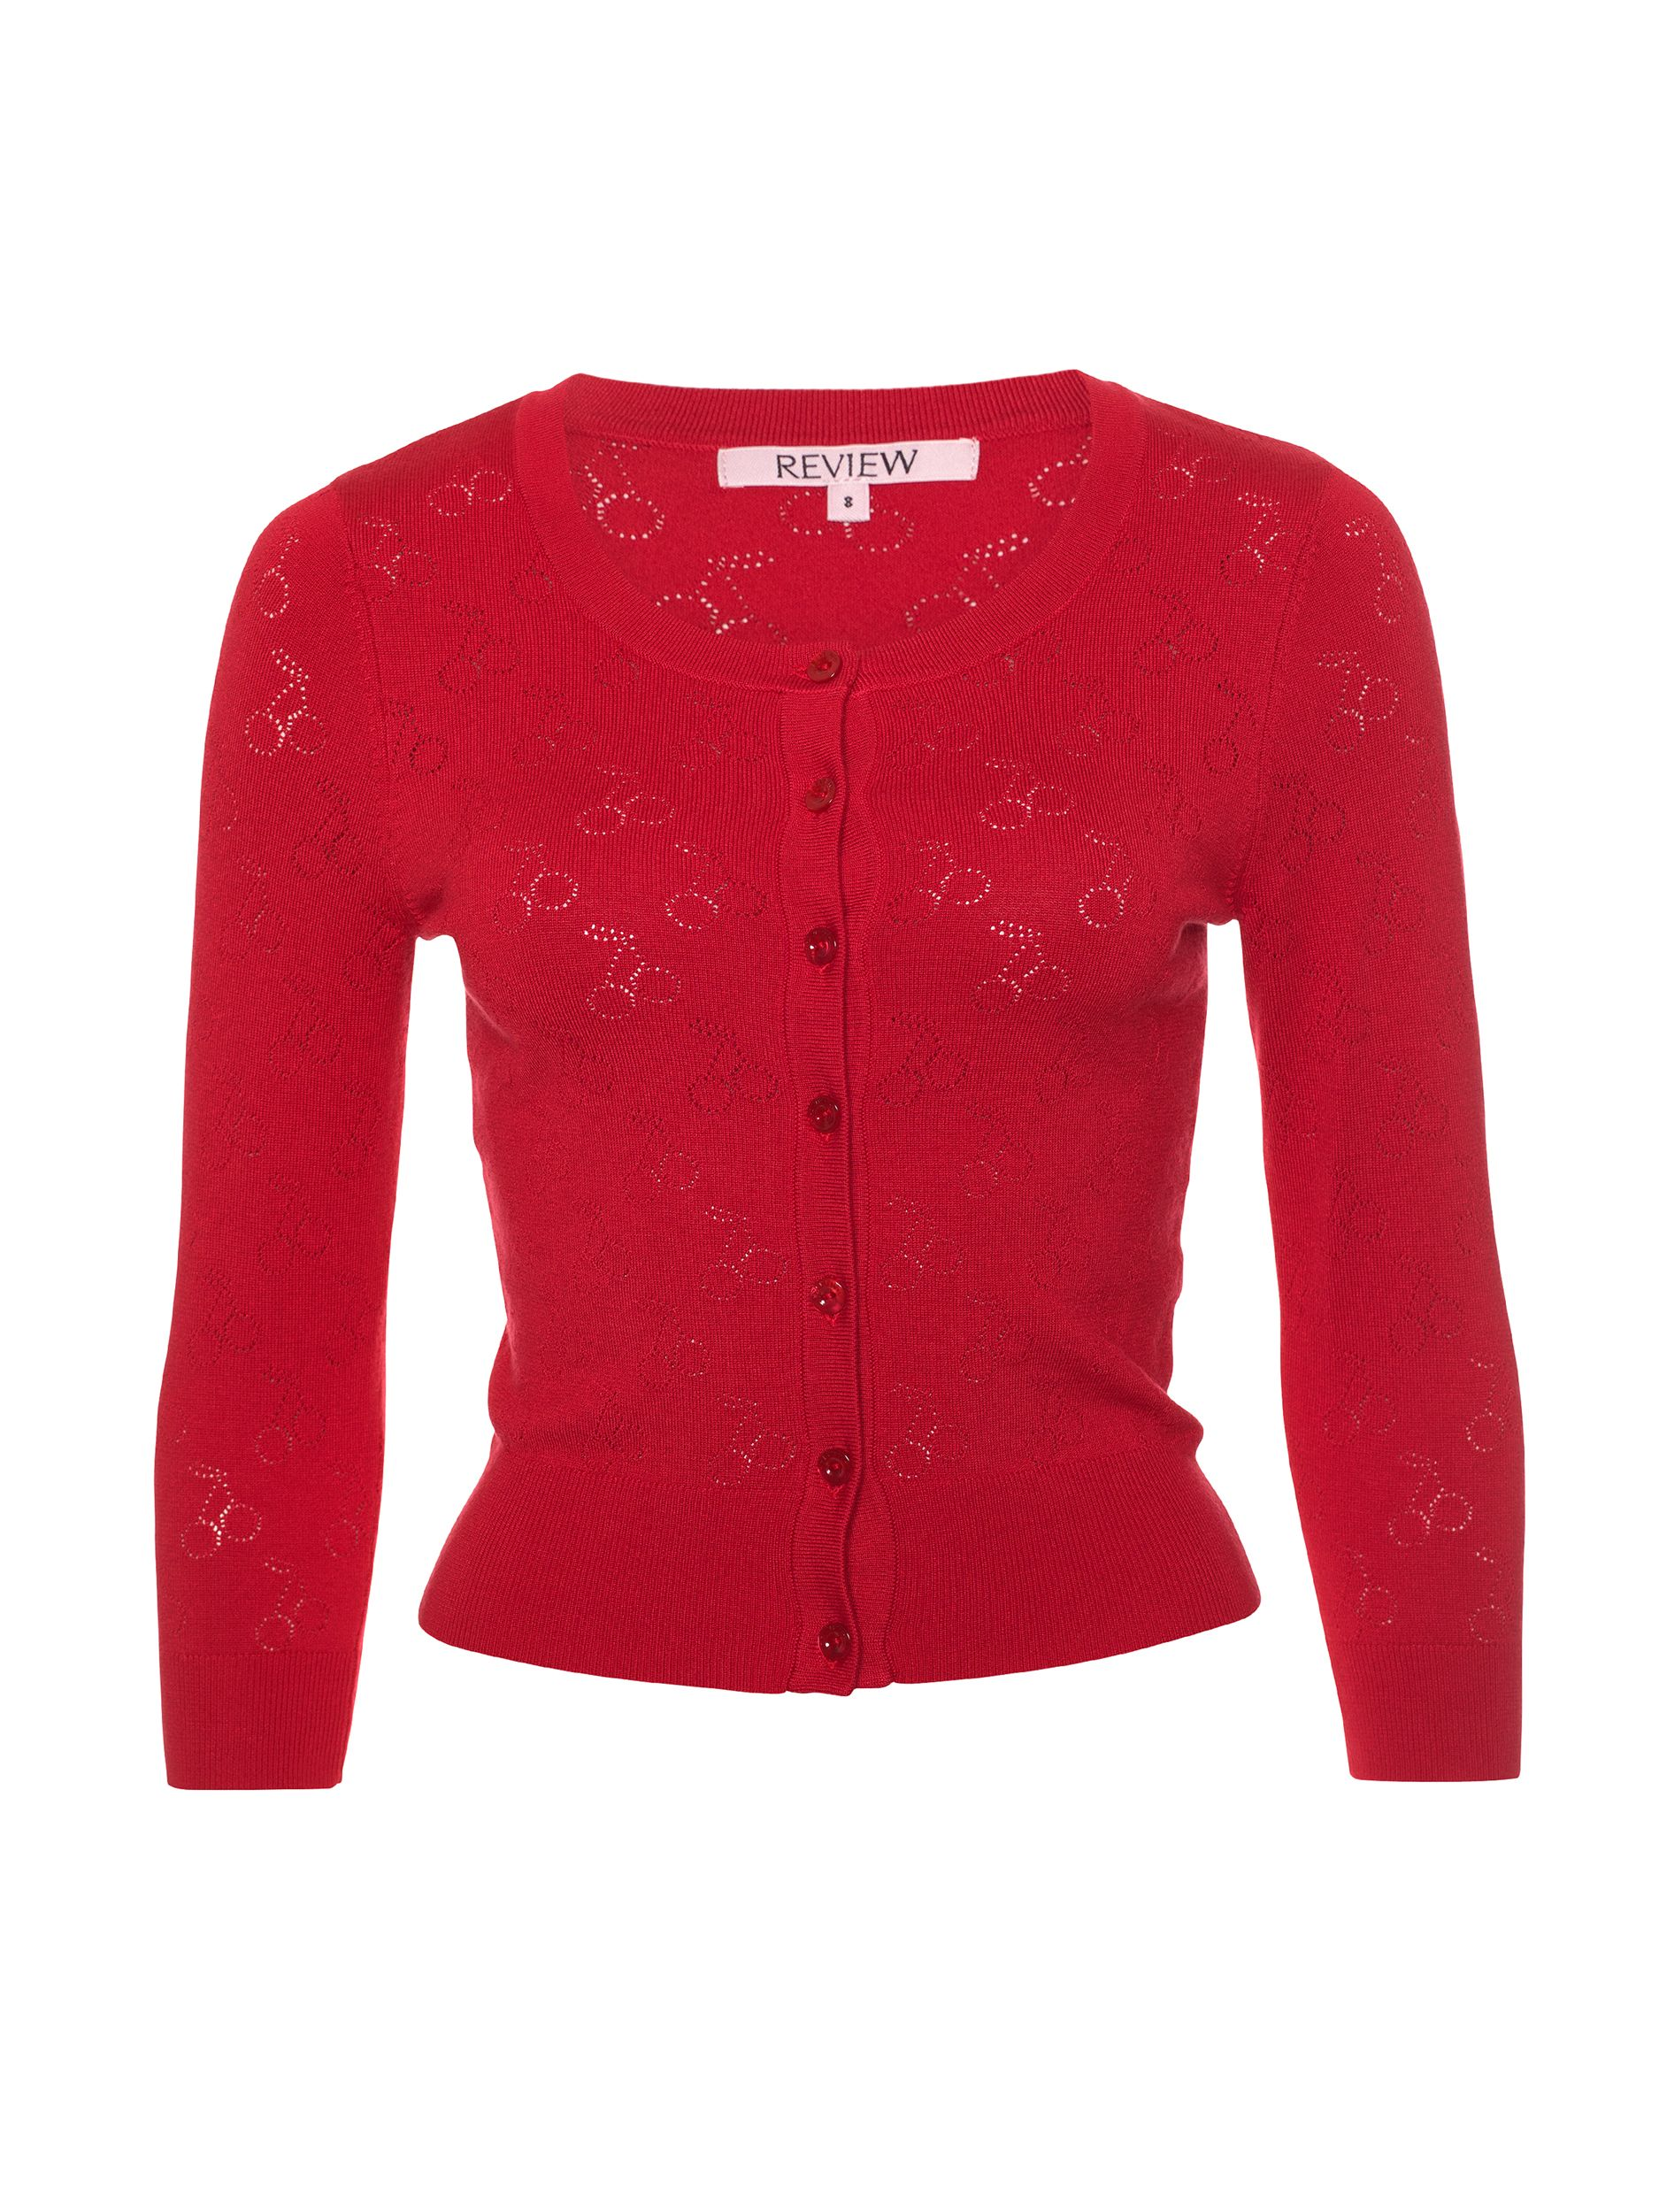 Turn Heads In Our Sweet Red Cherry Pie Cardi Perfect For Pairing With Your Favourite Summer Dress Or Adding A Pop Of Colou Review Clothing Work Wardrobe Cardi